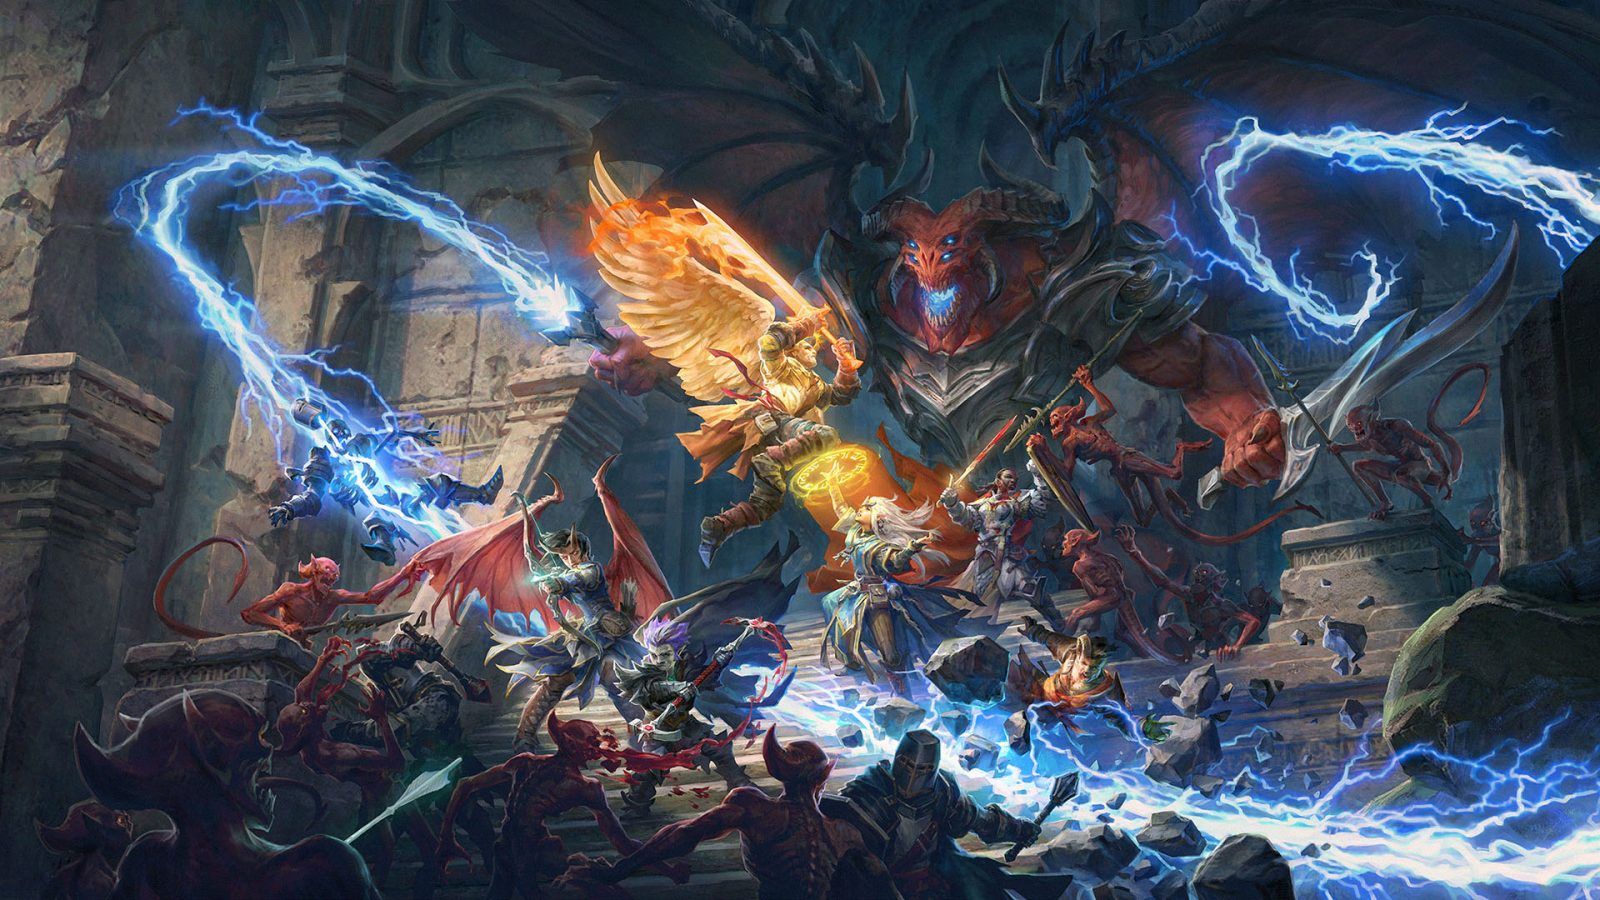 Pathfinder: Wrath of the Righteous announced – here's what we know so far